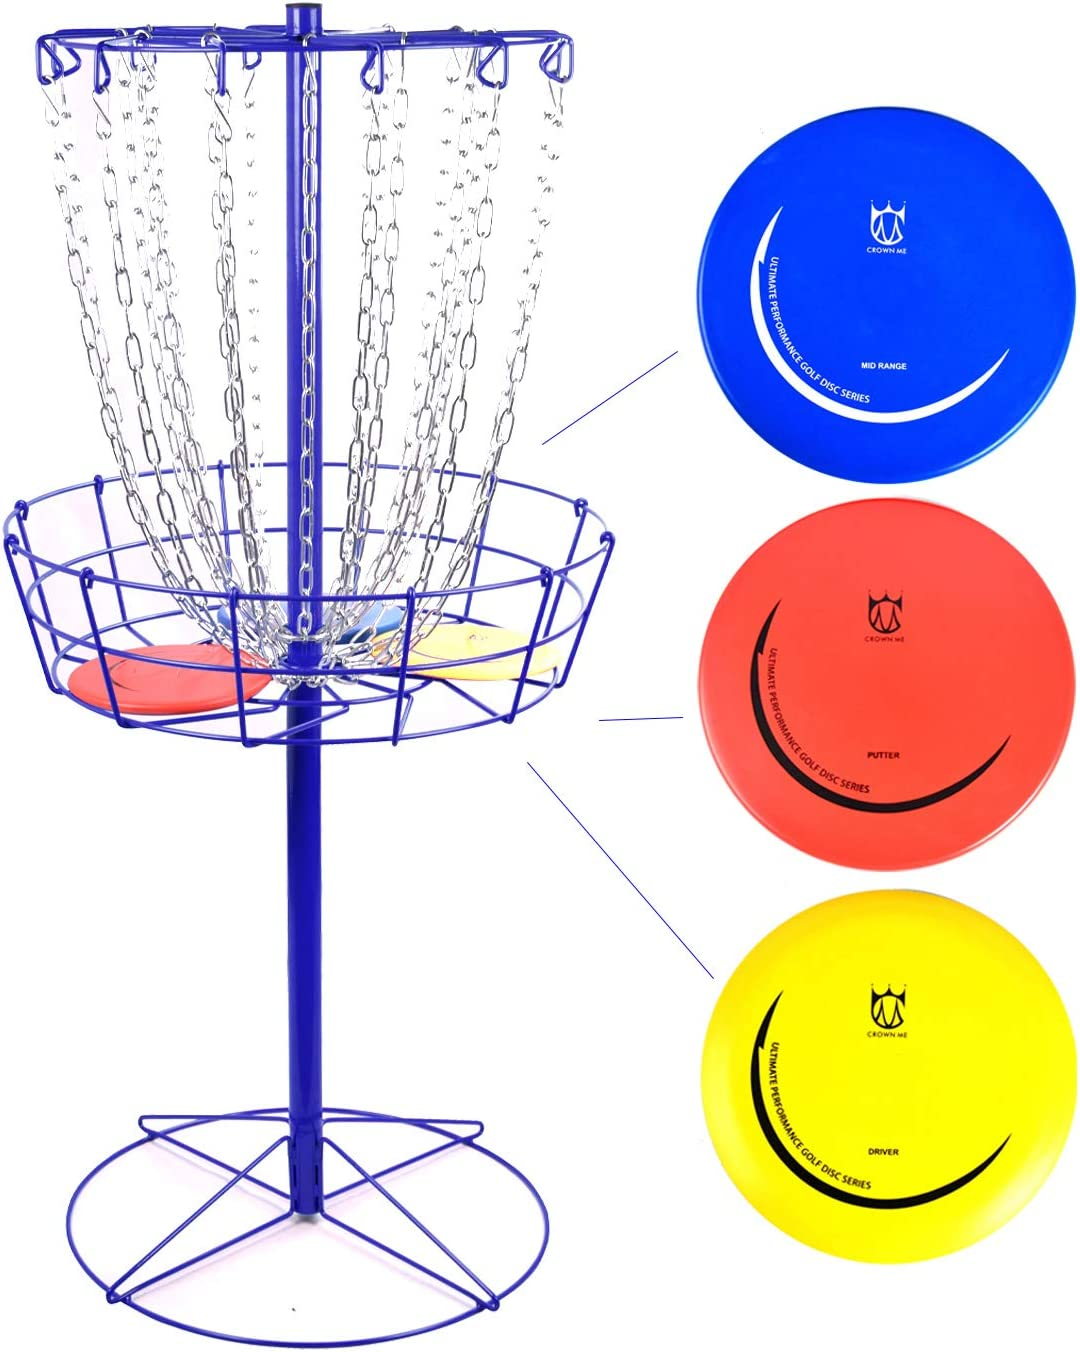 CROWN ME Disc Golf Basket Target Include Porta We OFFer at ! Super beauty product restock quality top! cheap prices 3 Discs 24-Chain